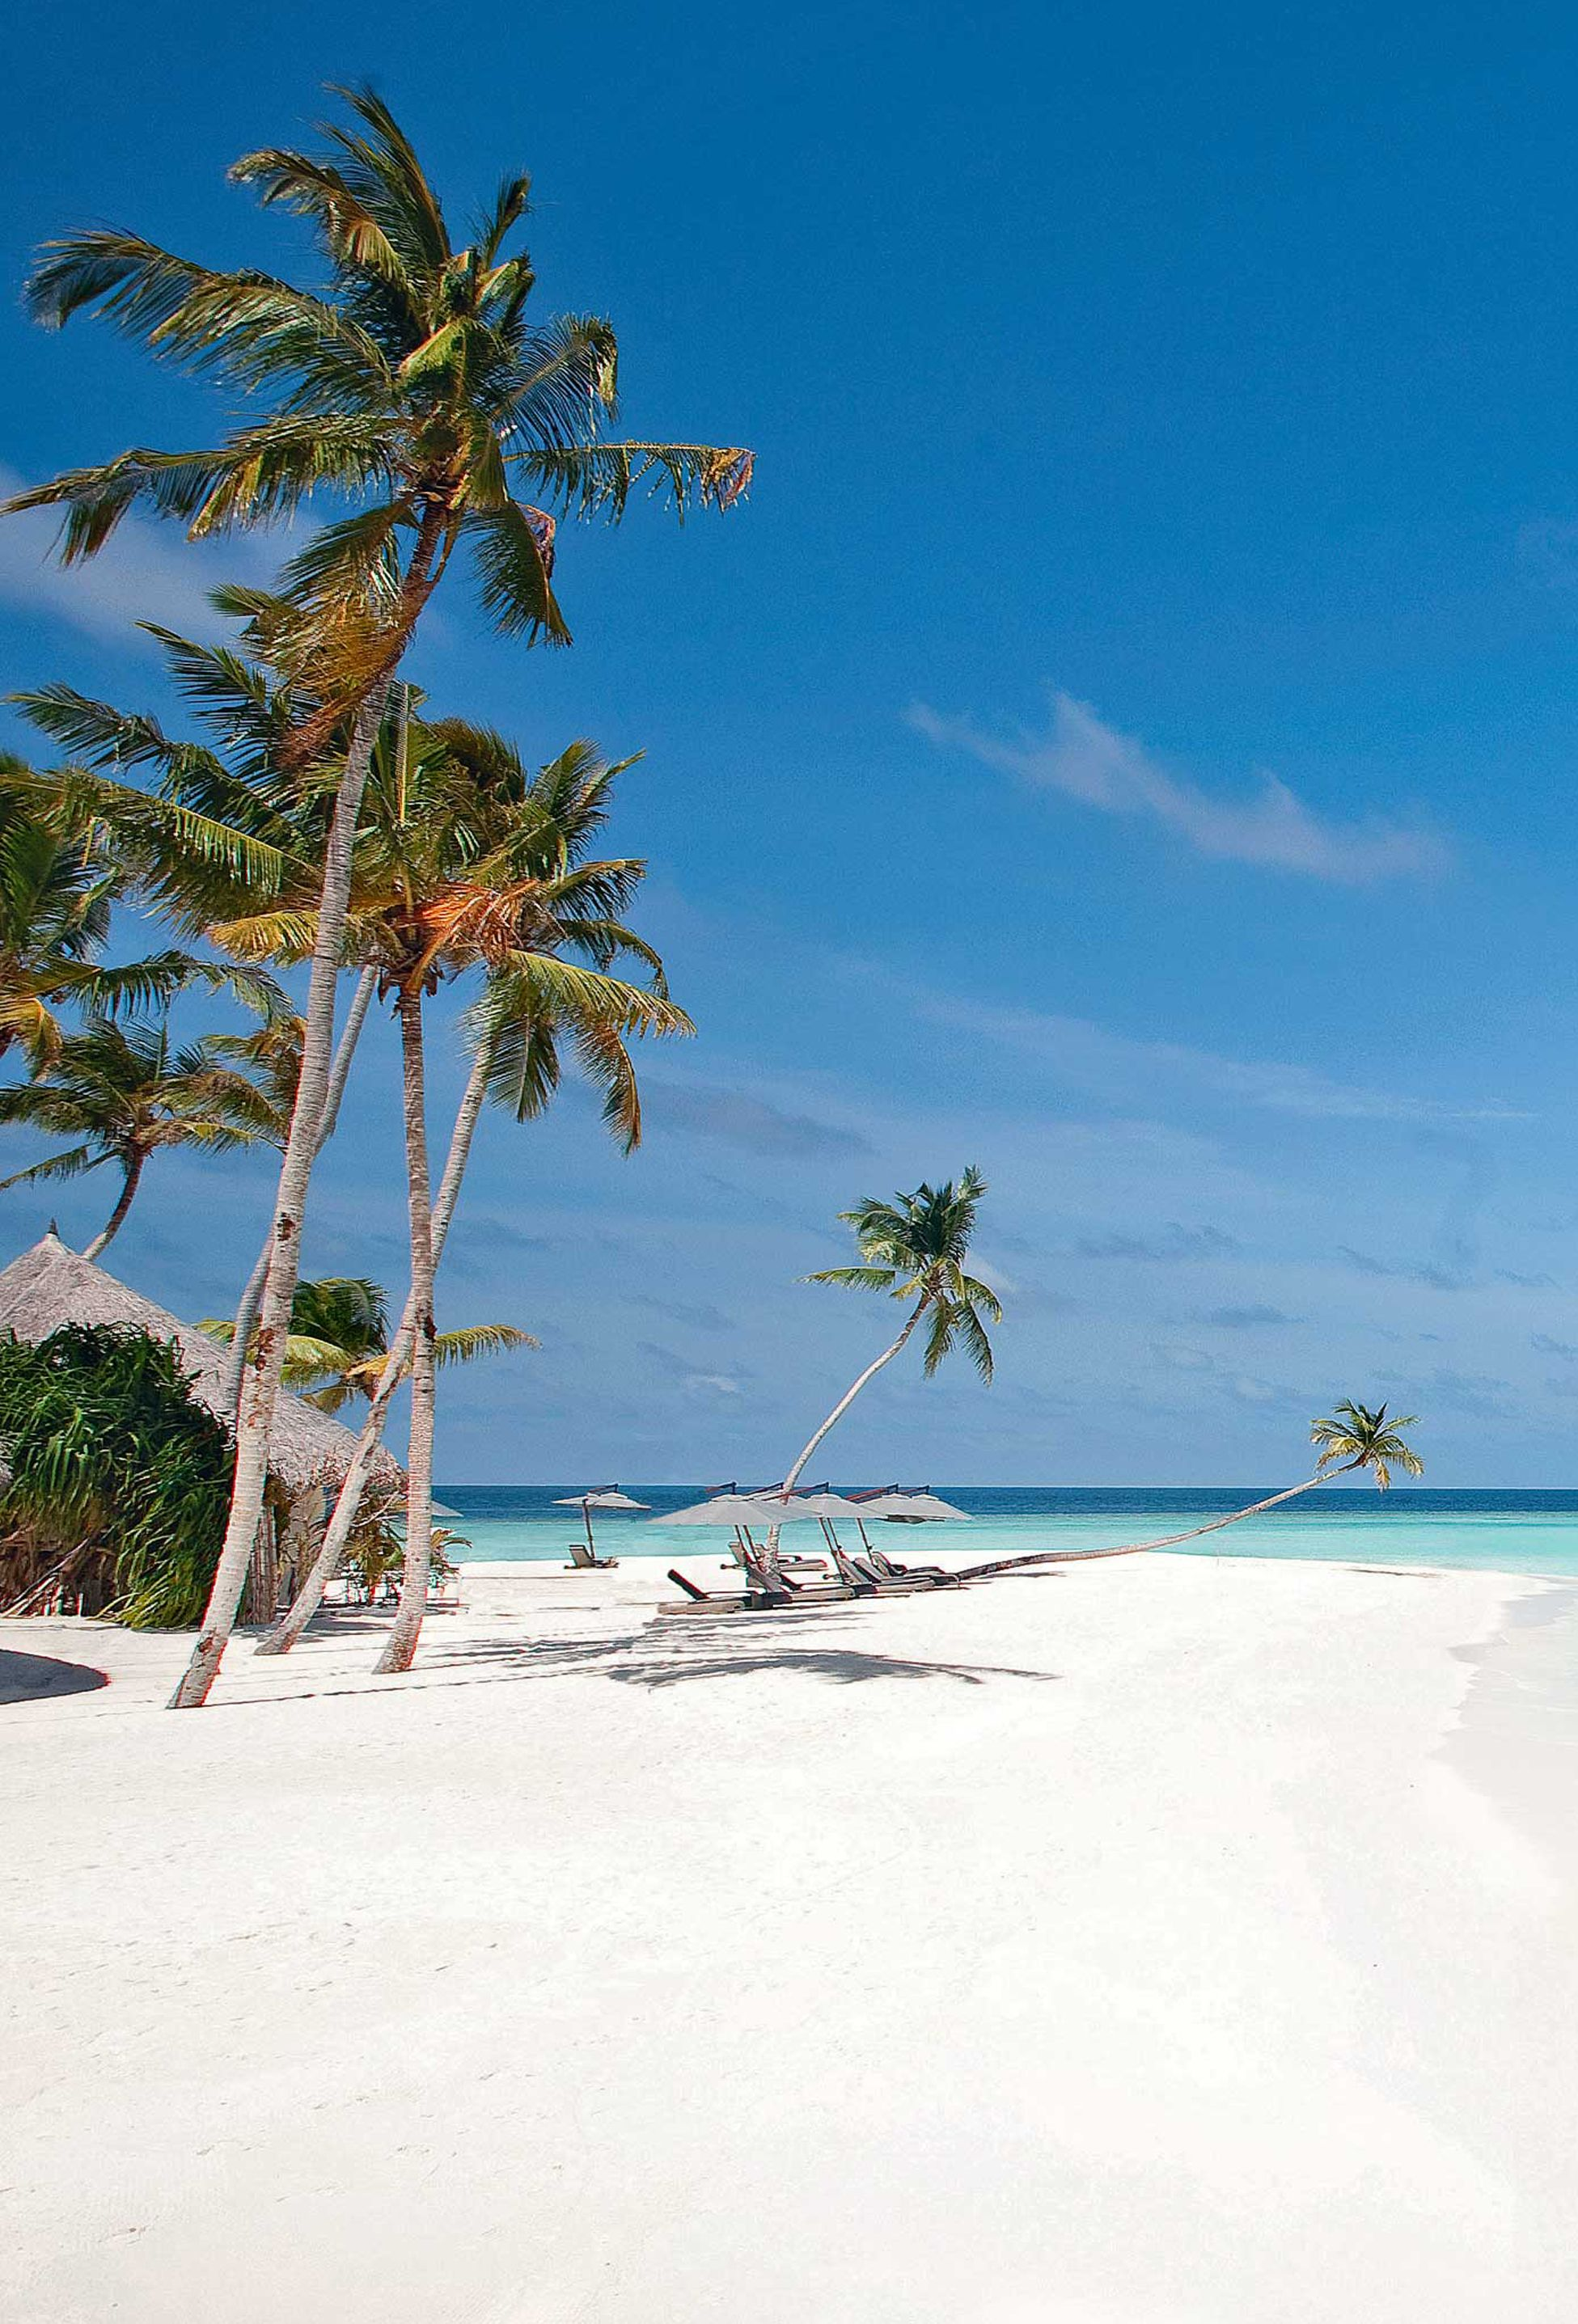 You can't go wrong in Maldives